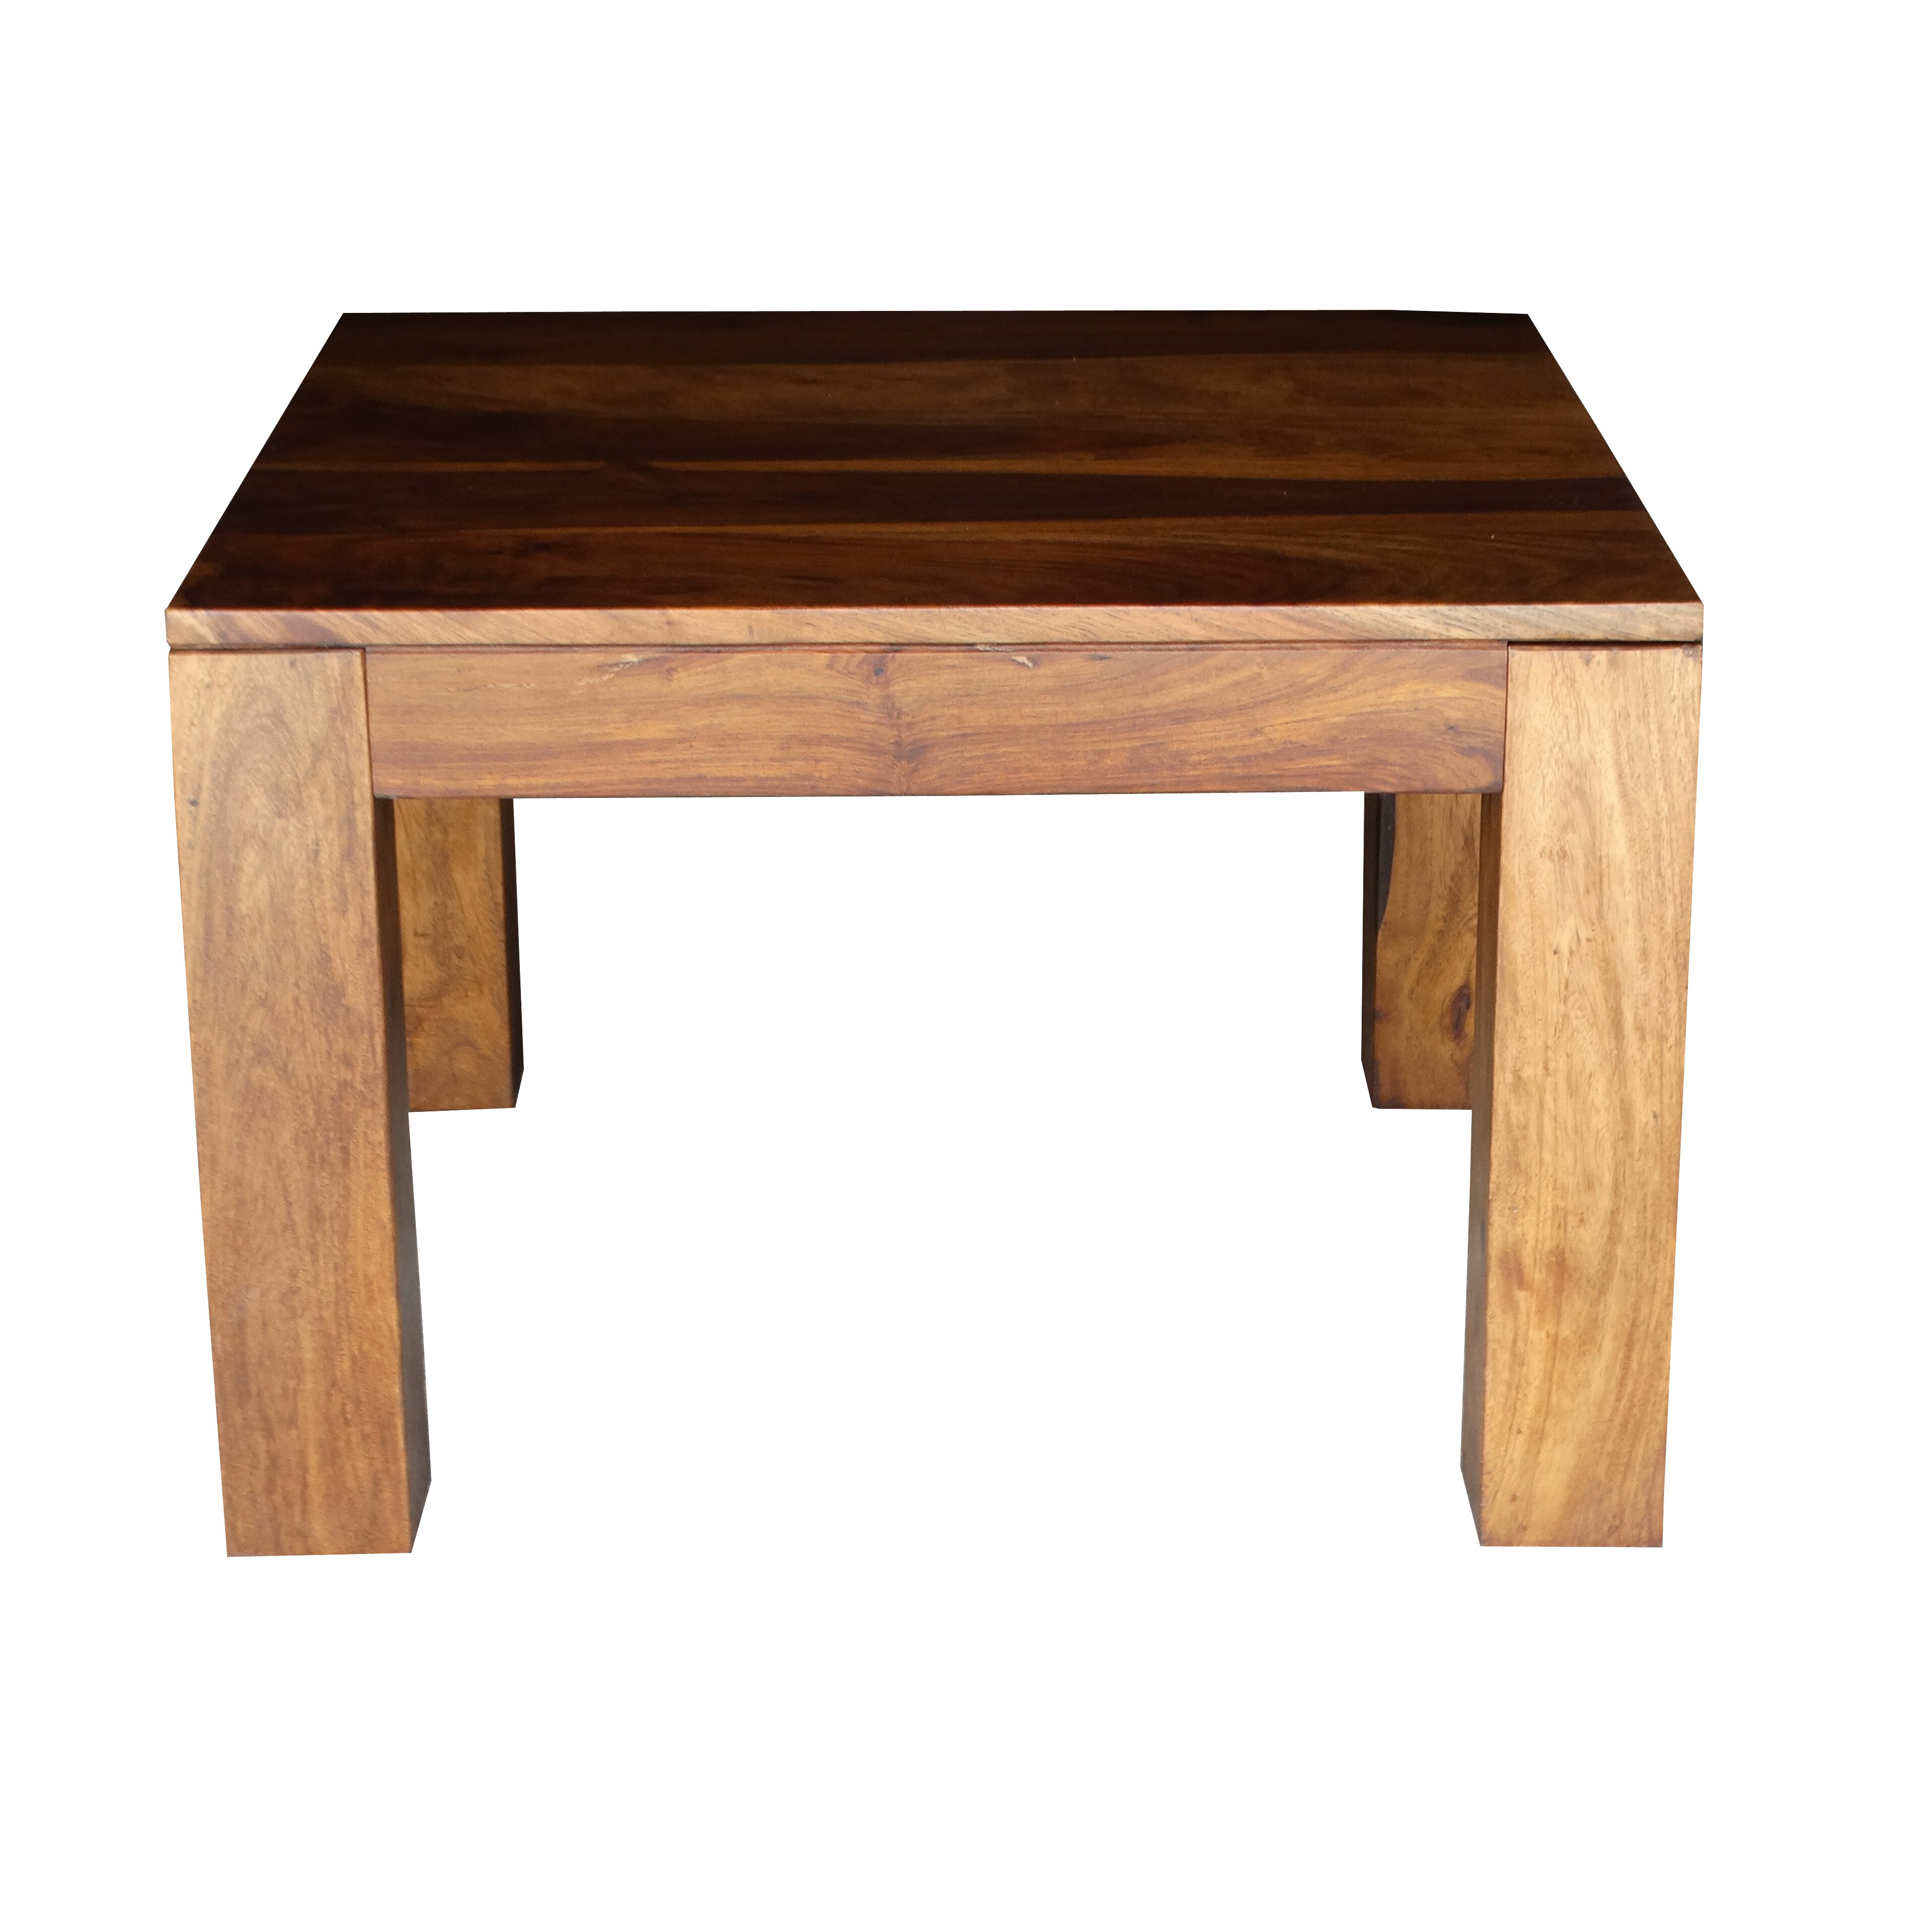 Timbergirl Cube Coffee Table Reviews Wayfair